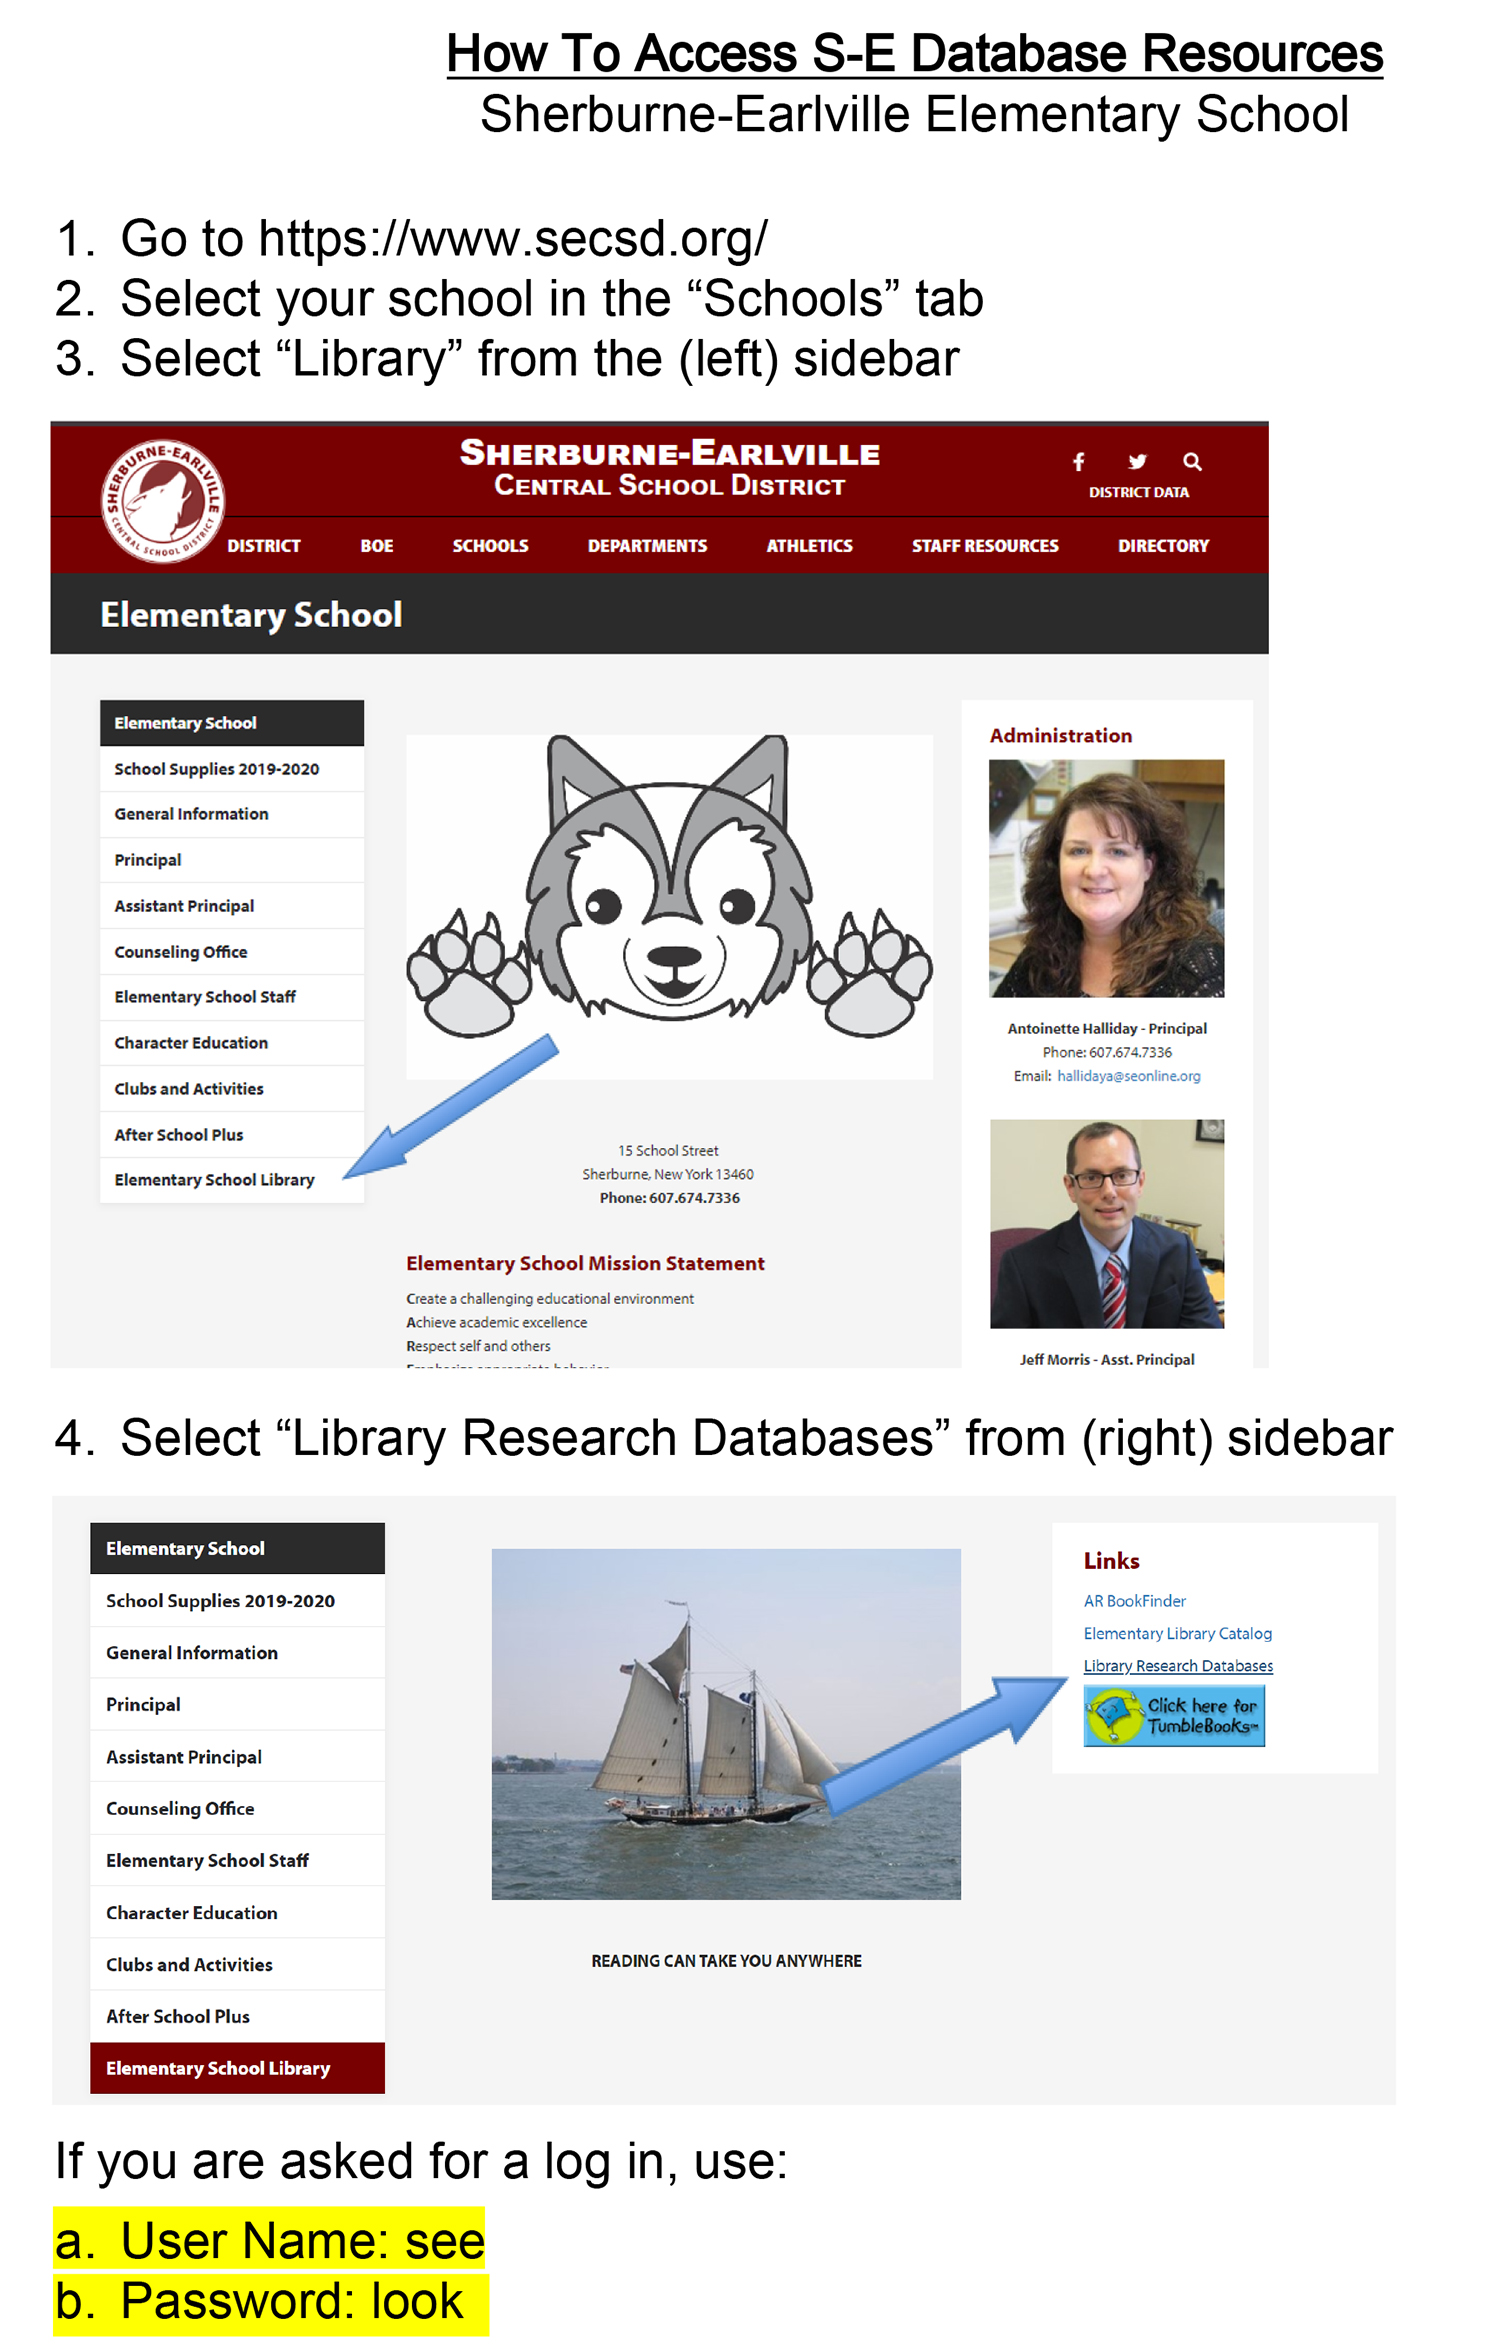 How to Access Database Resources (3/2020)